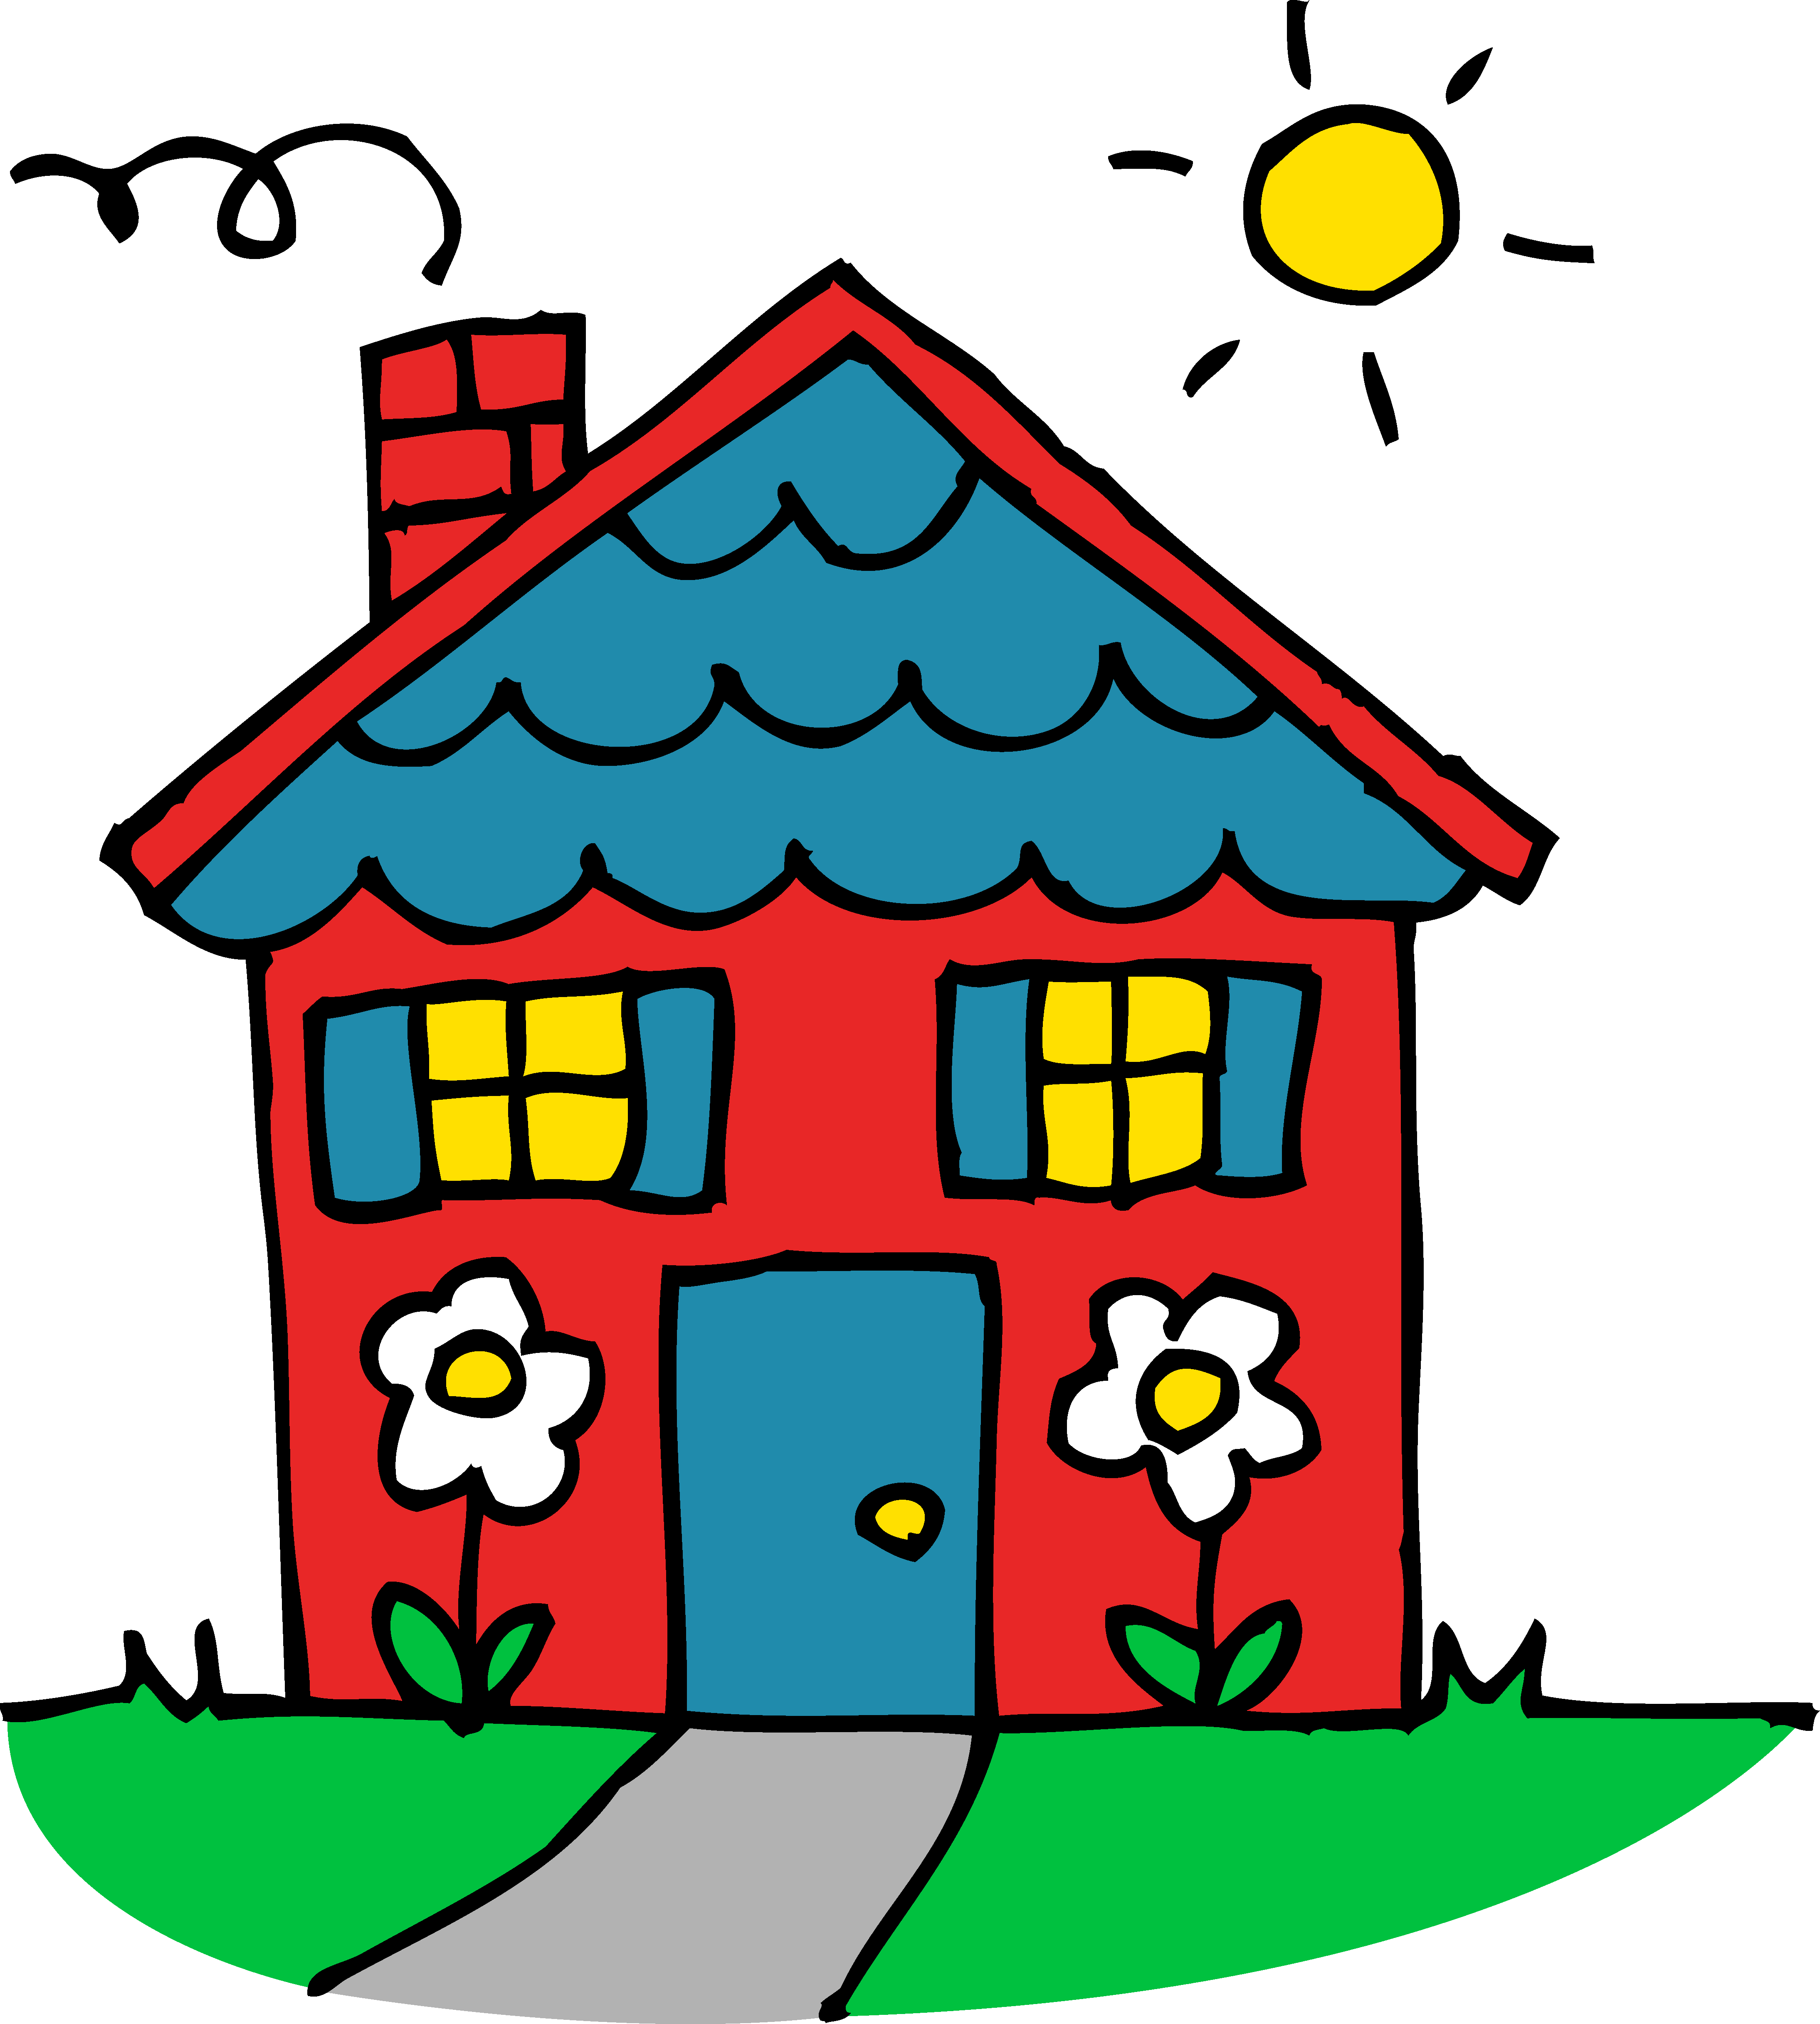 Abandoned house clipart graphic black and white library I Inherited a House, What To Do? – Should I rent or sell in McKinney? graphic black and white library